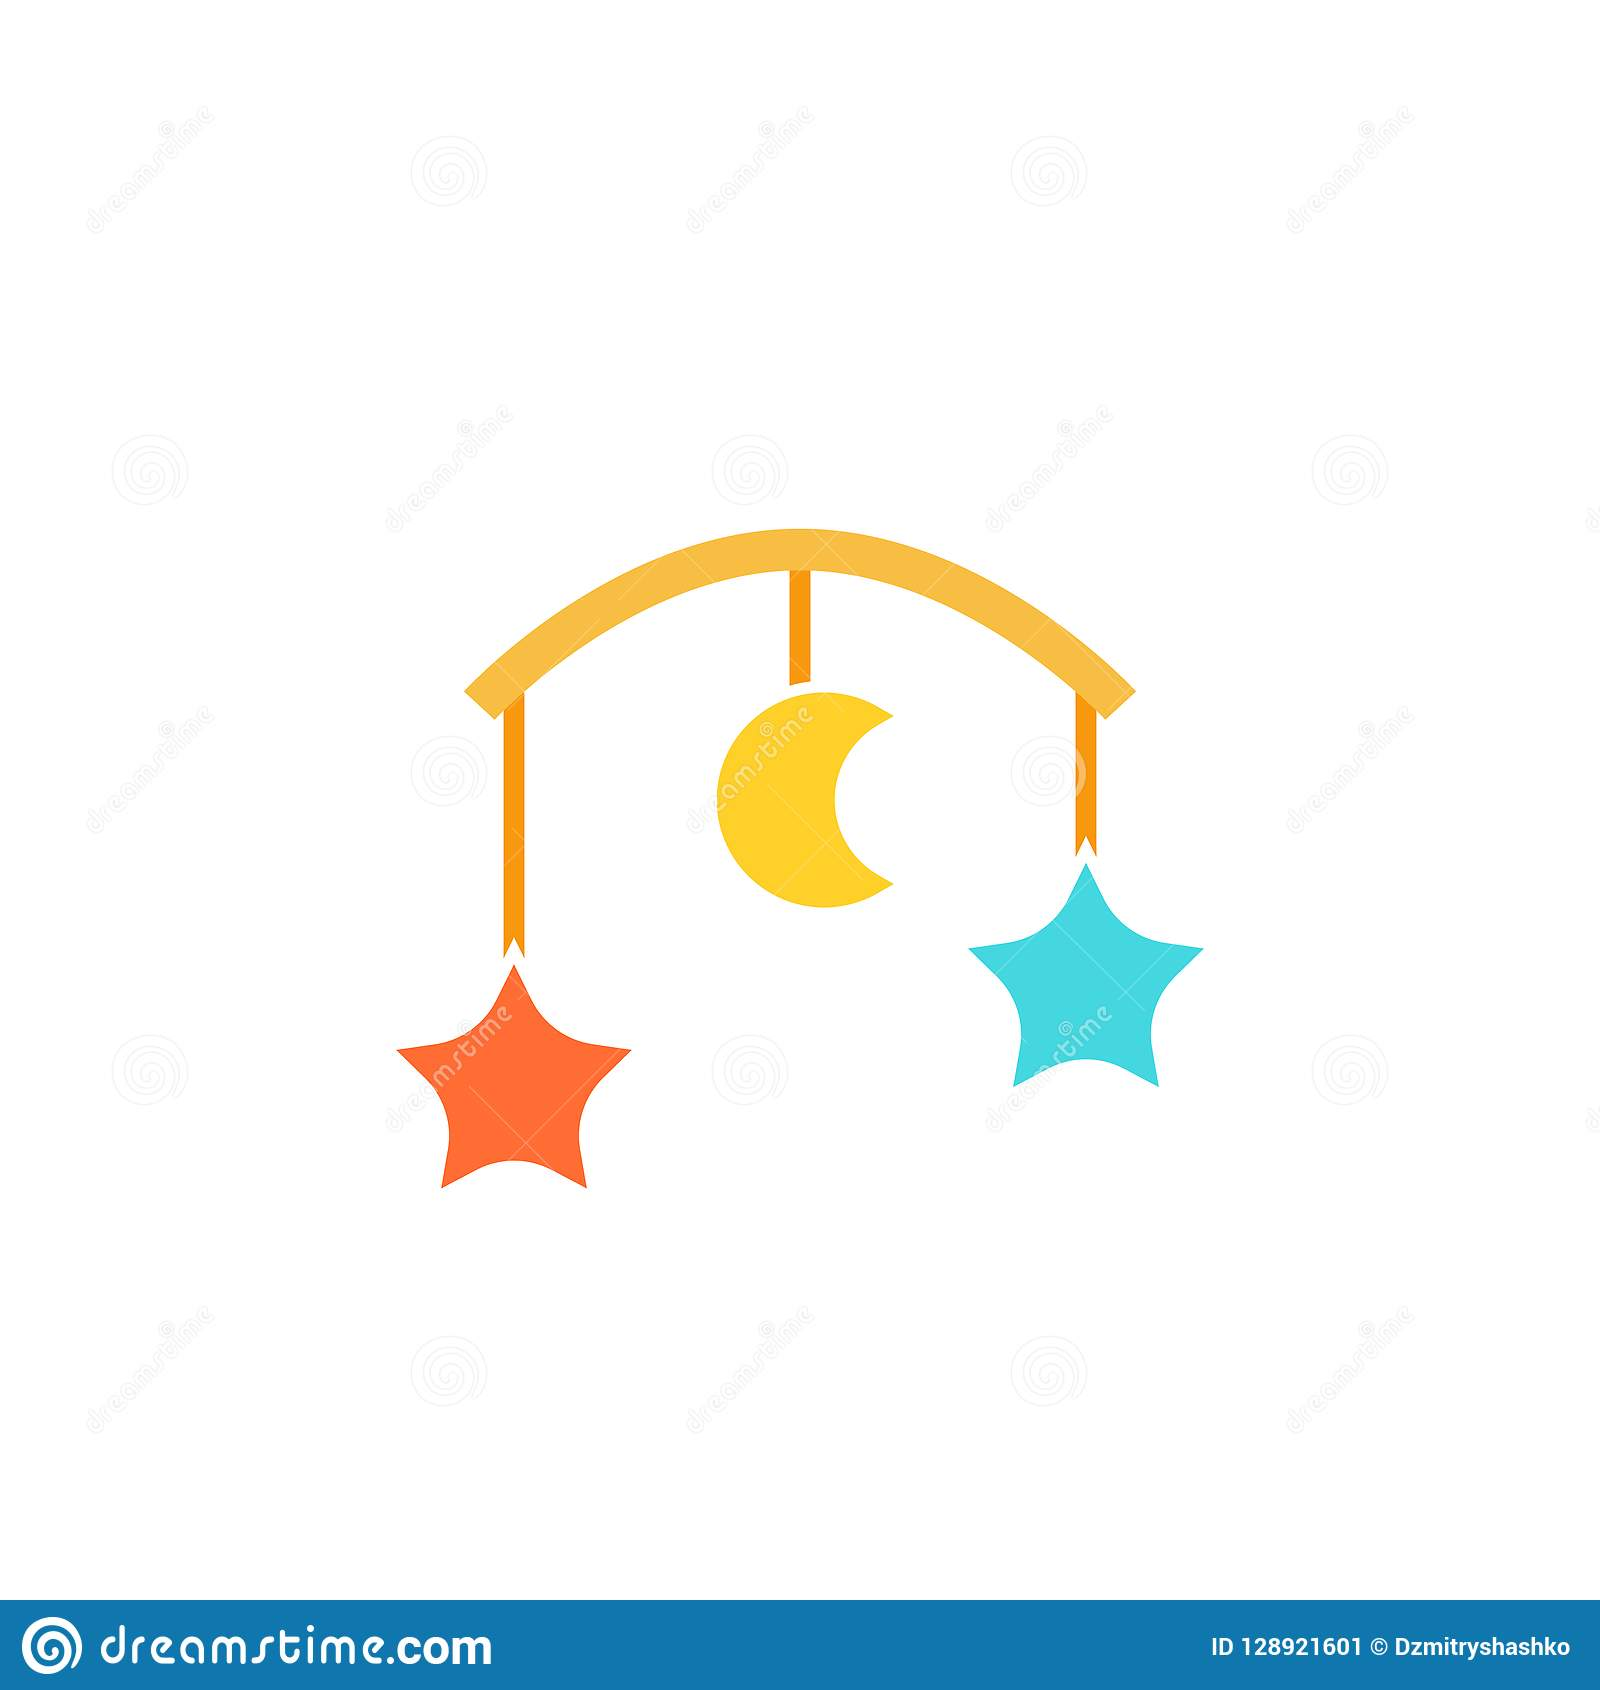 hight resolution of baby crib mobile icon clipart image isolated on white background